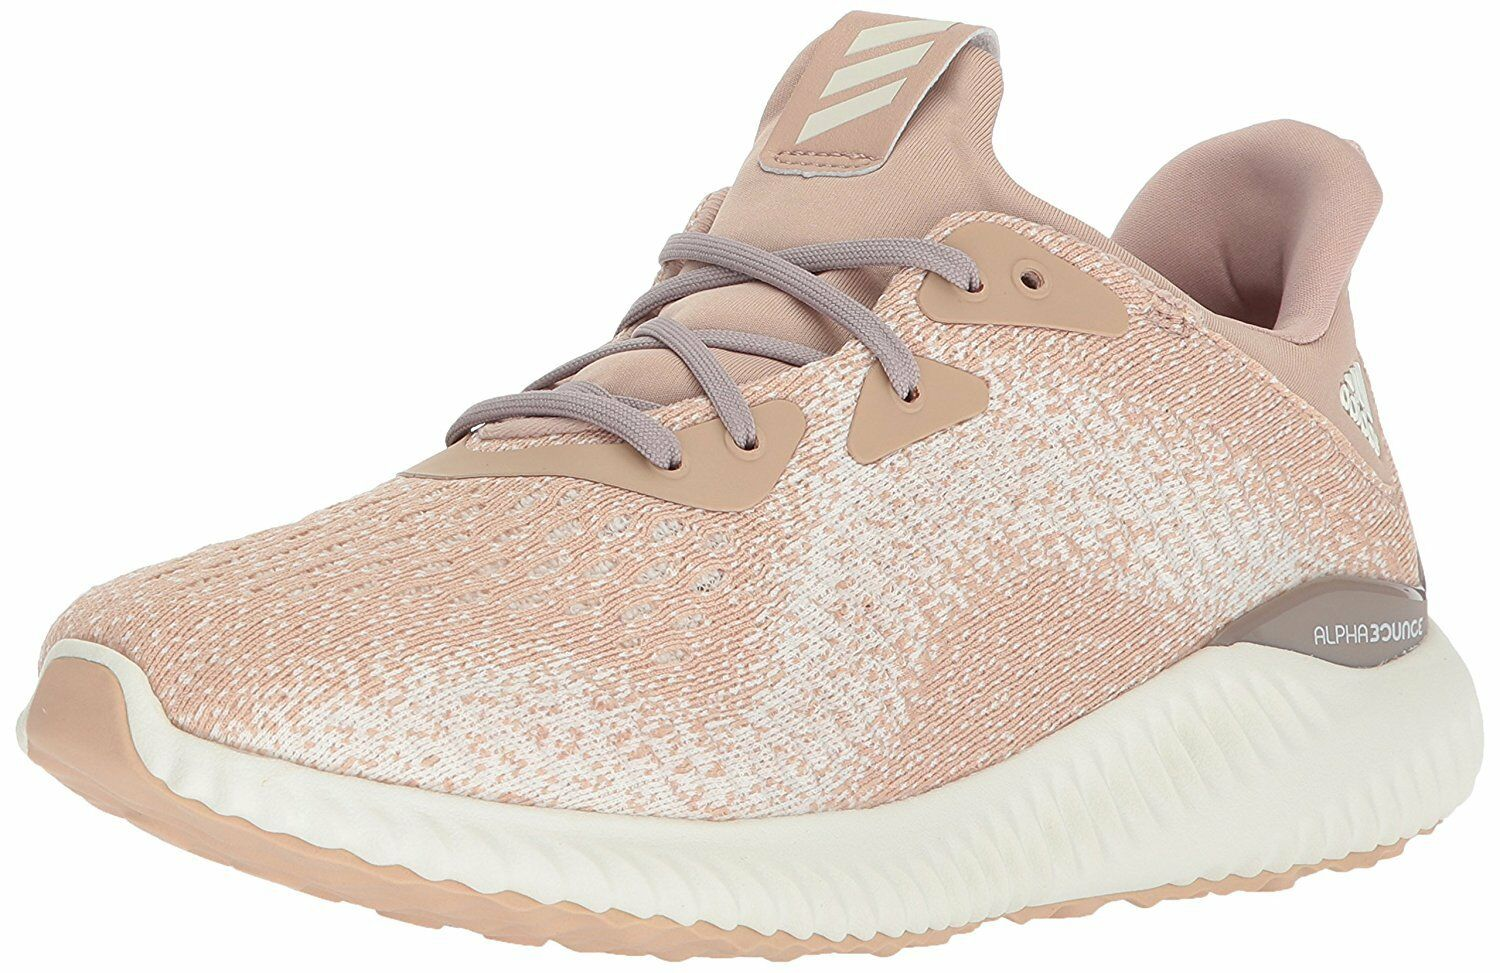 d08866677 adidas Alphabounce 1 Shoes Women s Ash Pearl   off White 7 for sale ...